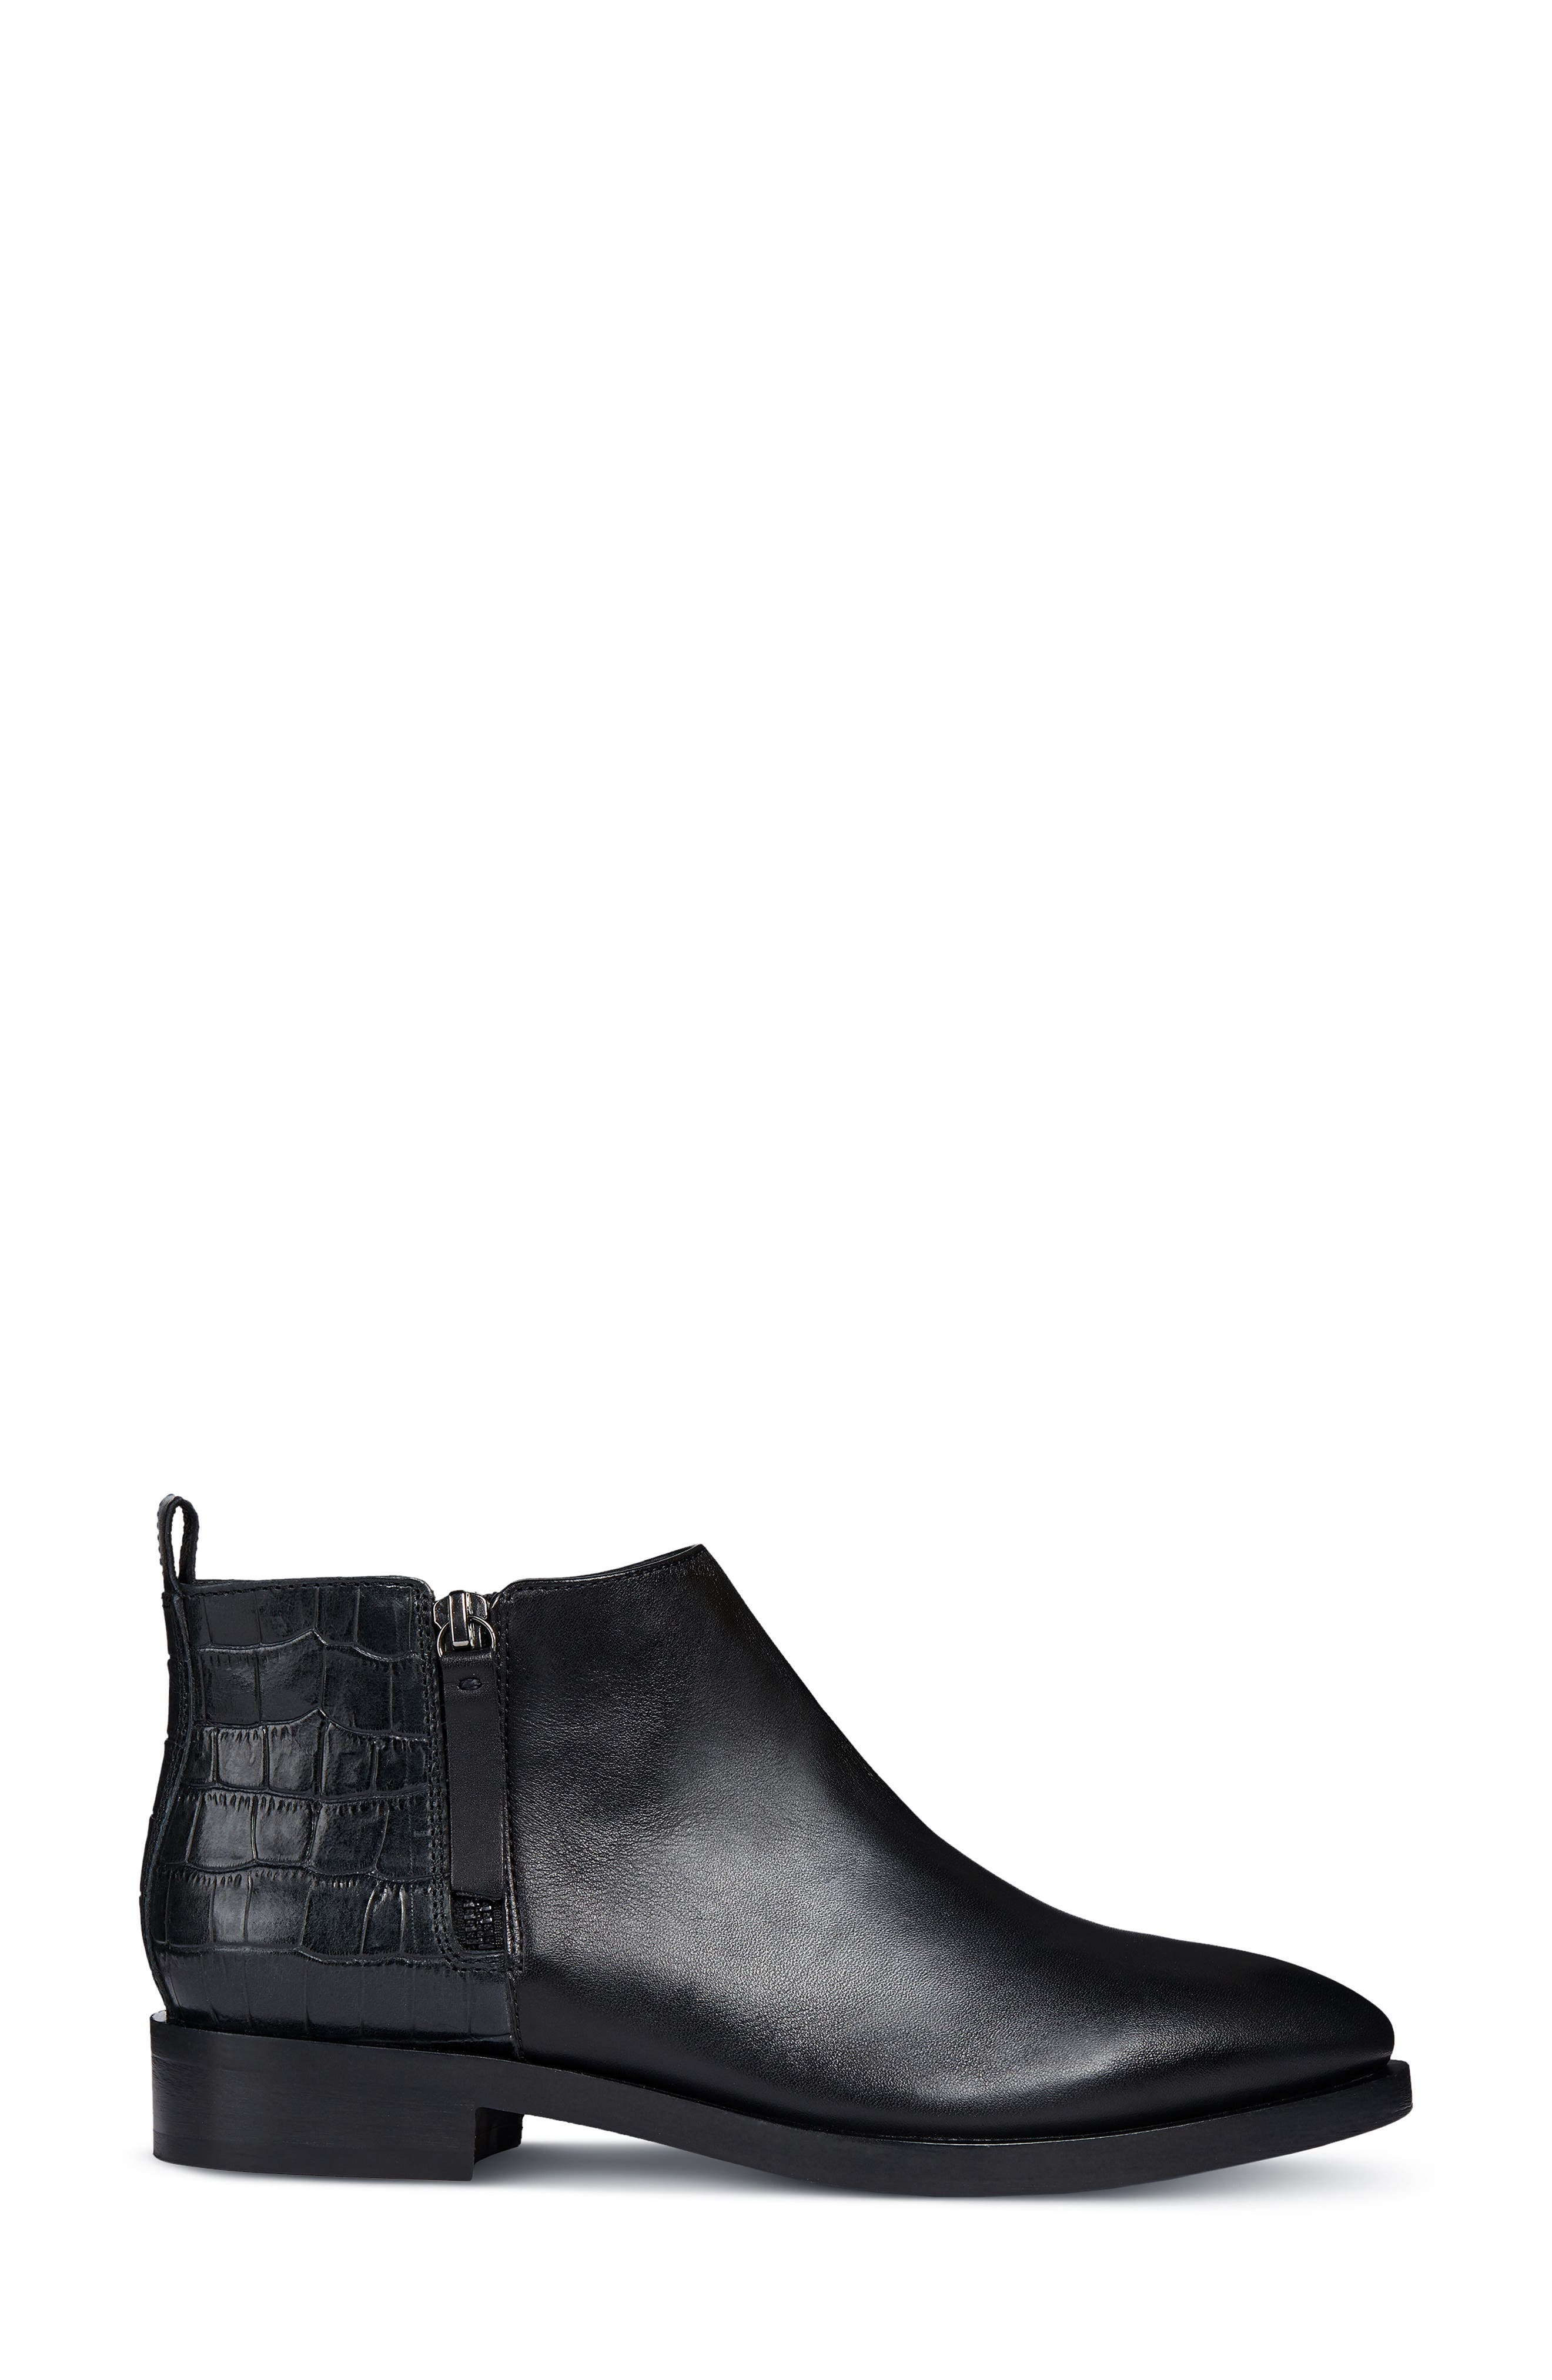 Brogue Bootie,                             Alternate thumbnail 3, color,                             BLACK LEATHER